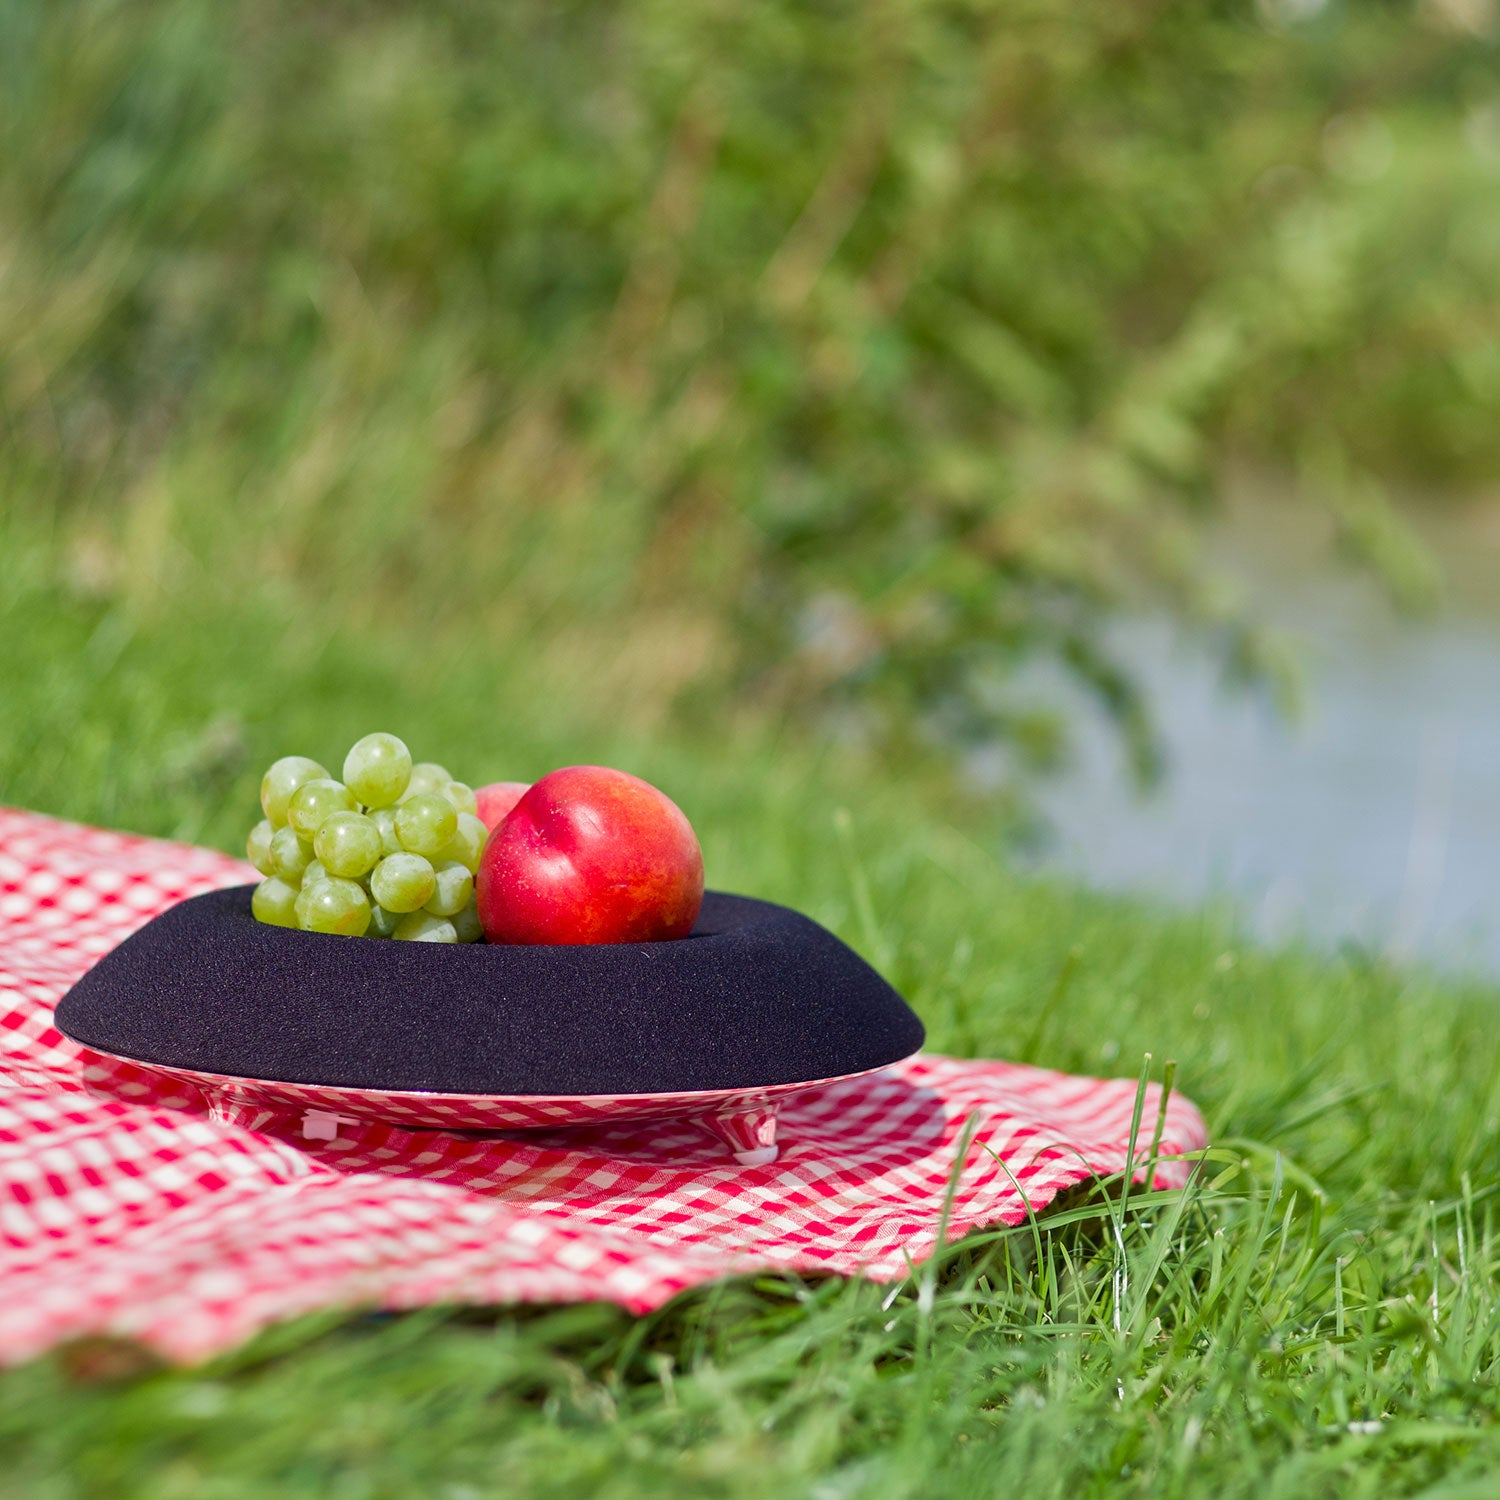 Summertime is picnic time